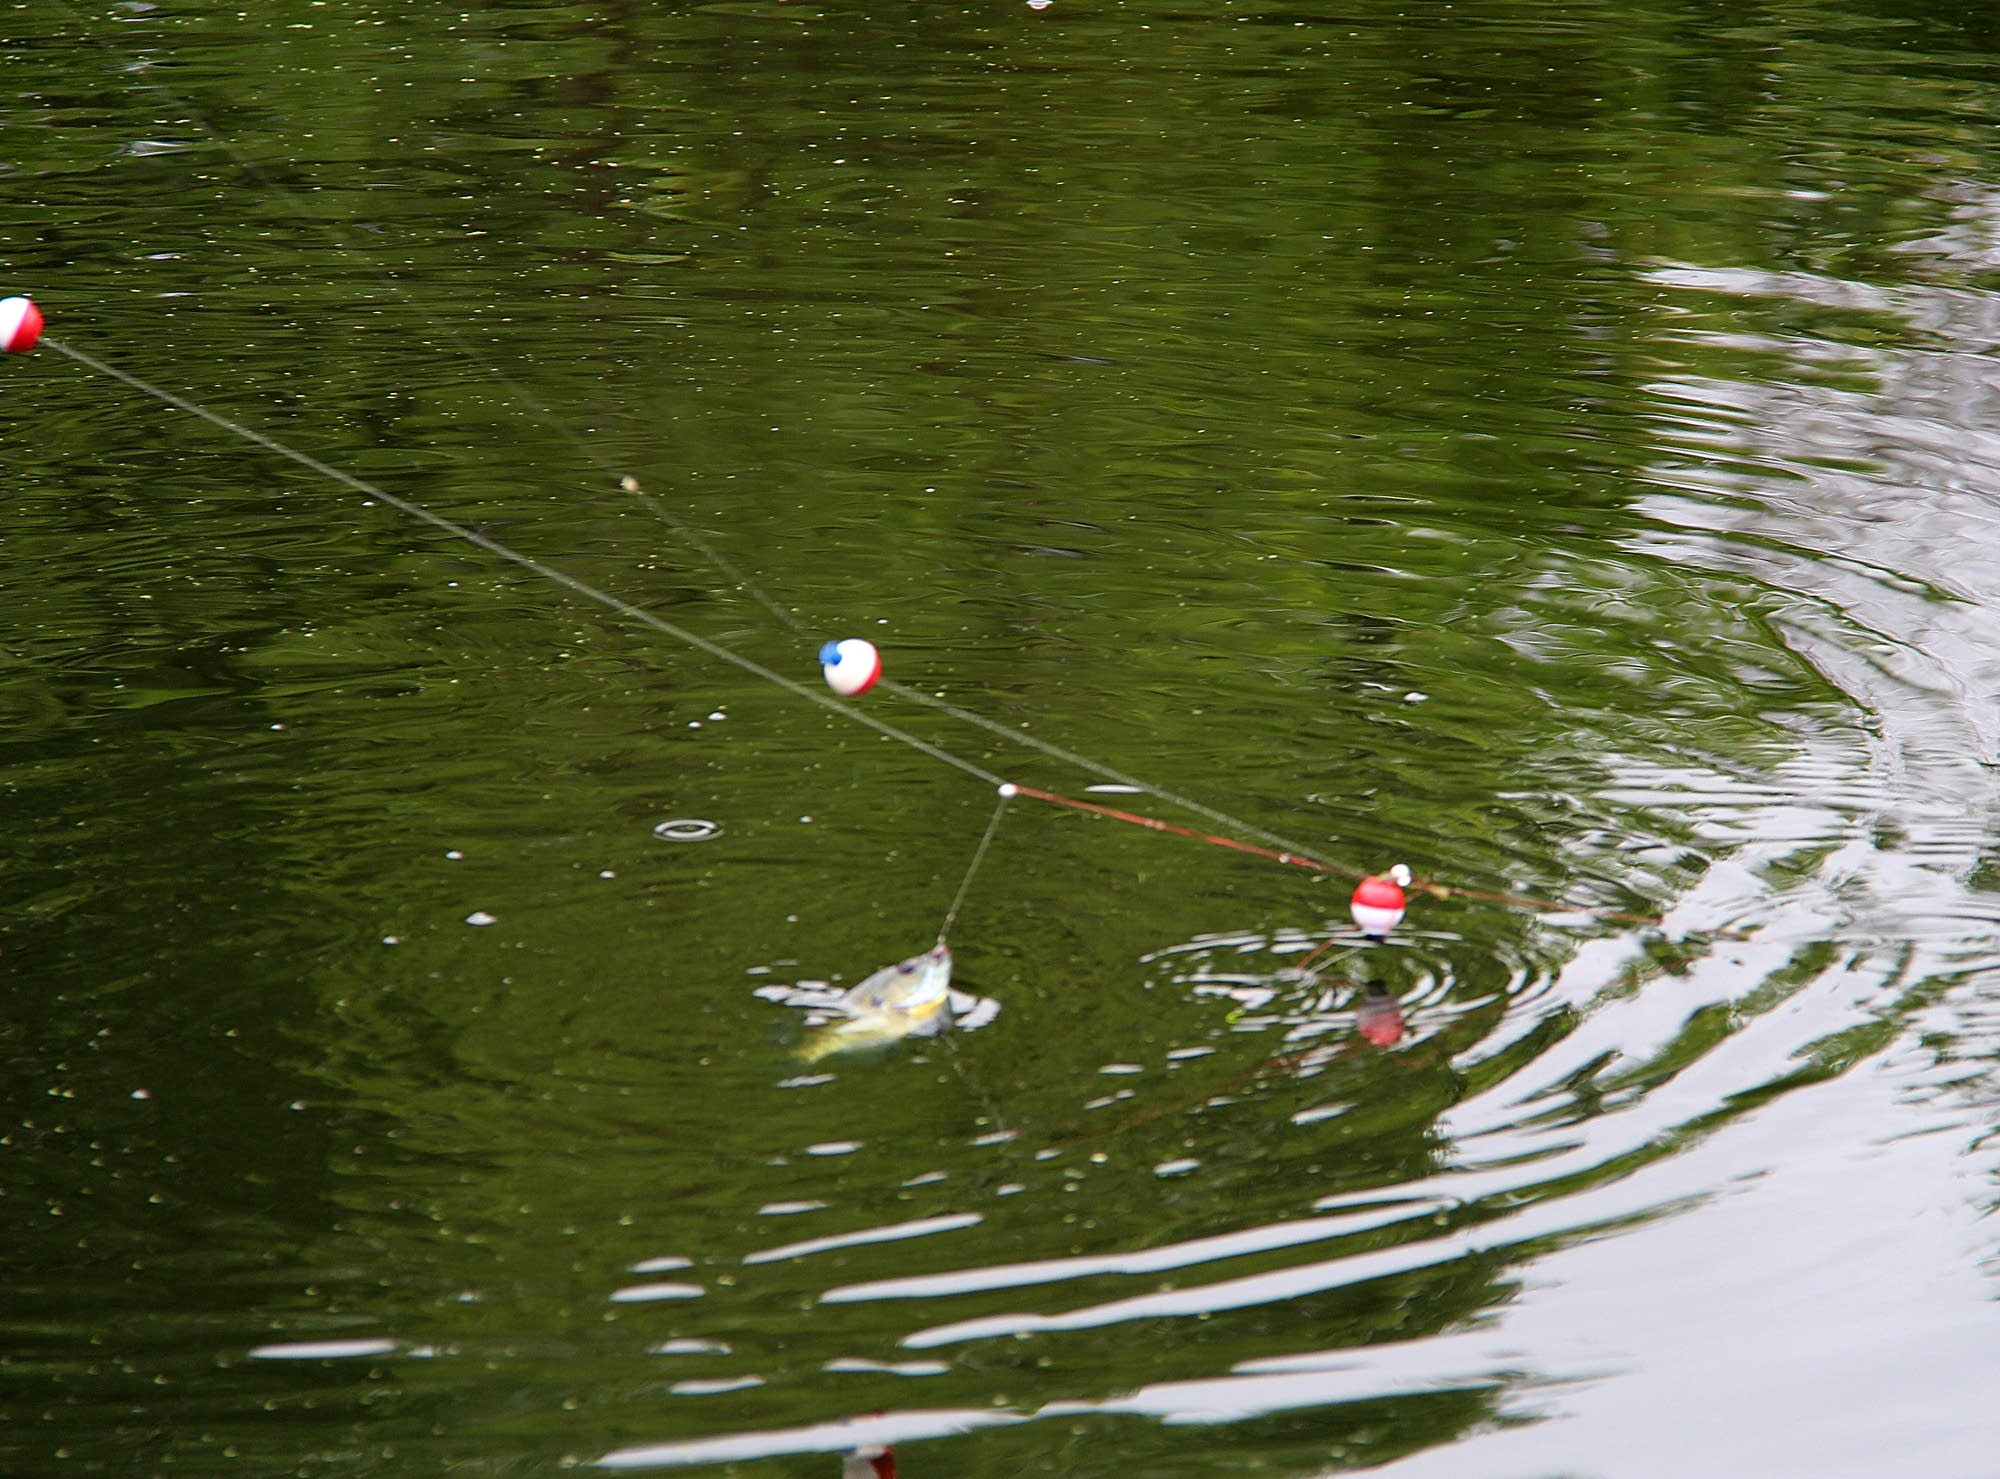 A freshly caught fish can be seen just above the surface.